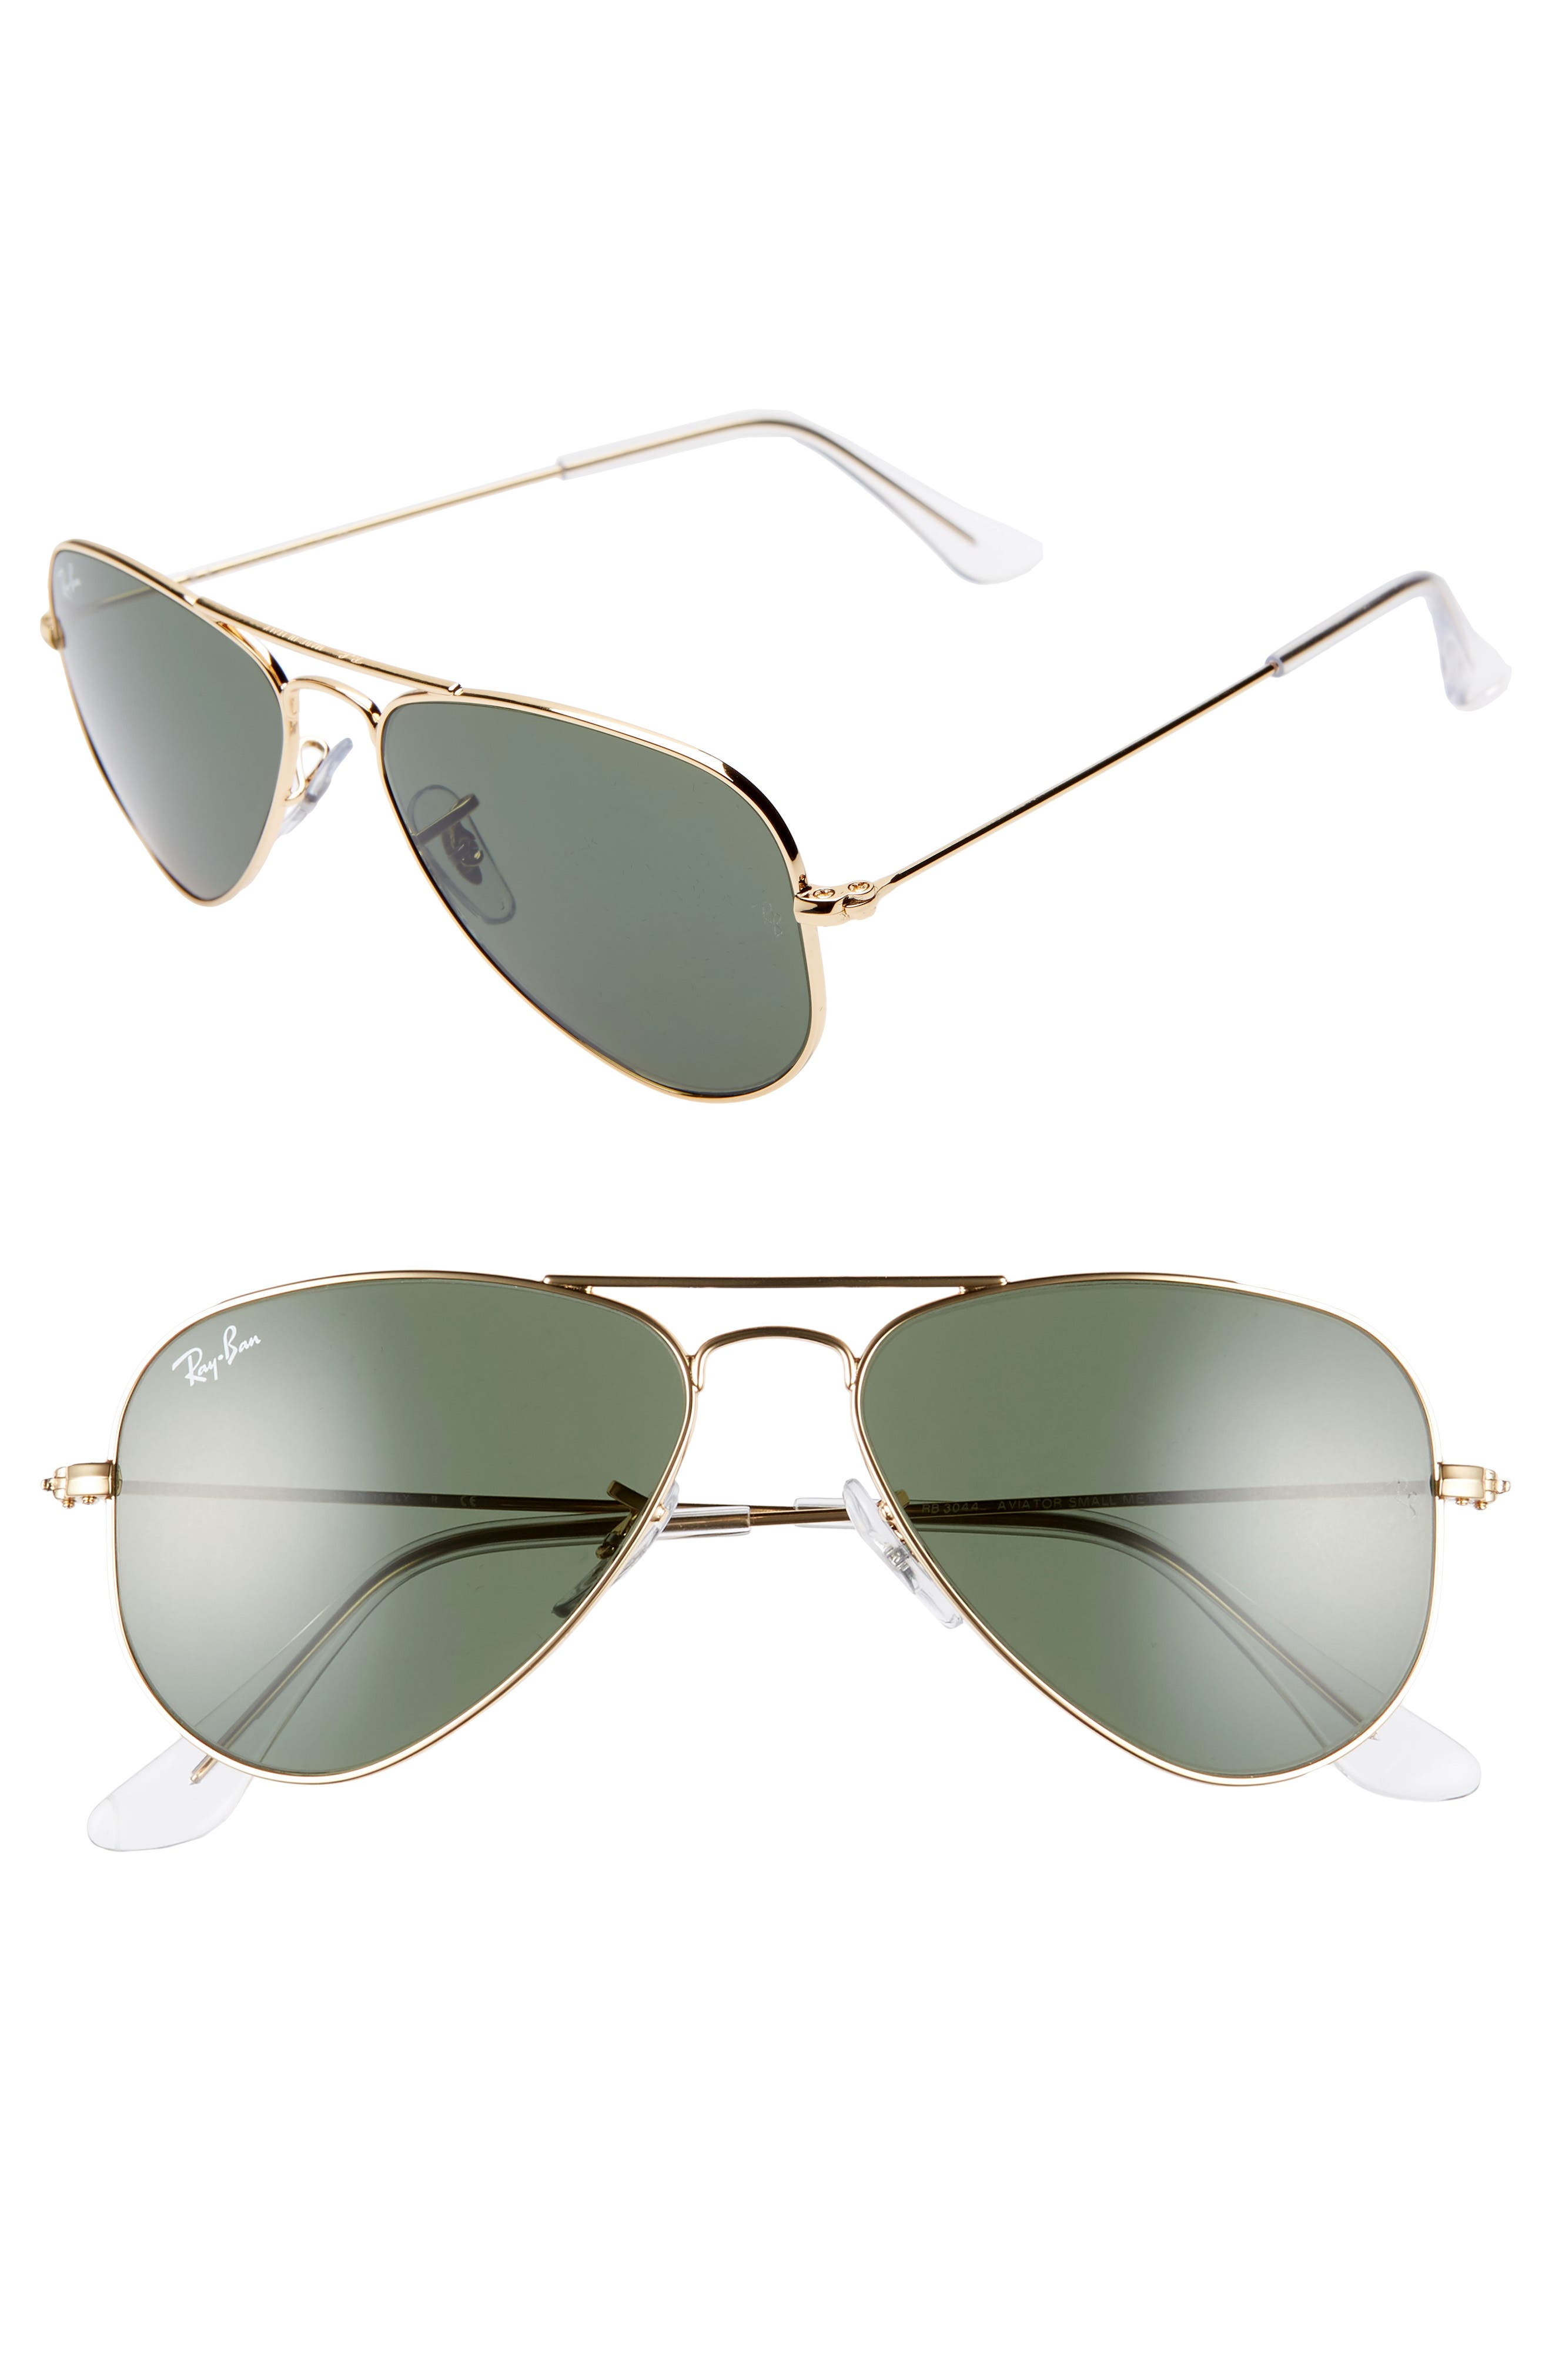 Ray-Ban 52Mm Extra Small Aviator Sunglasses - Gold/ Green Solid